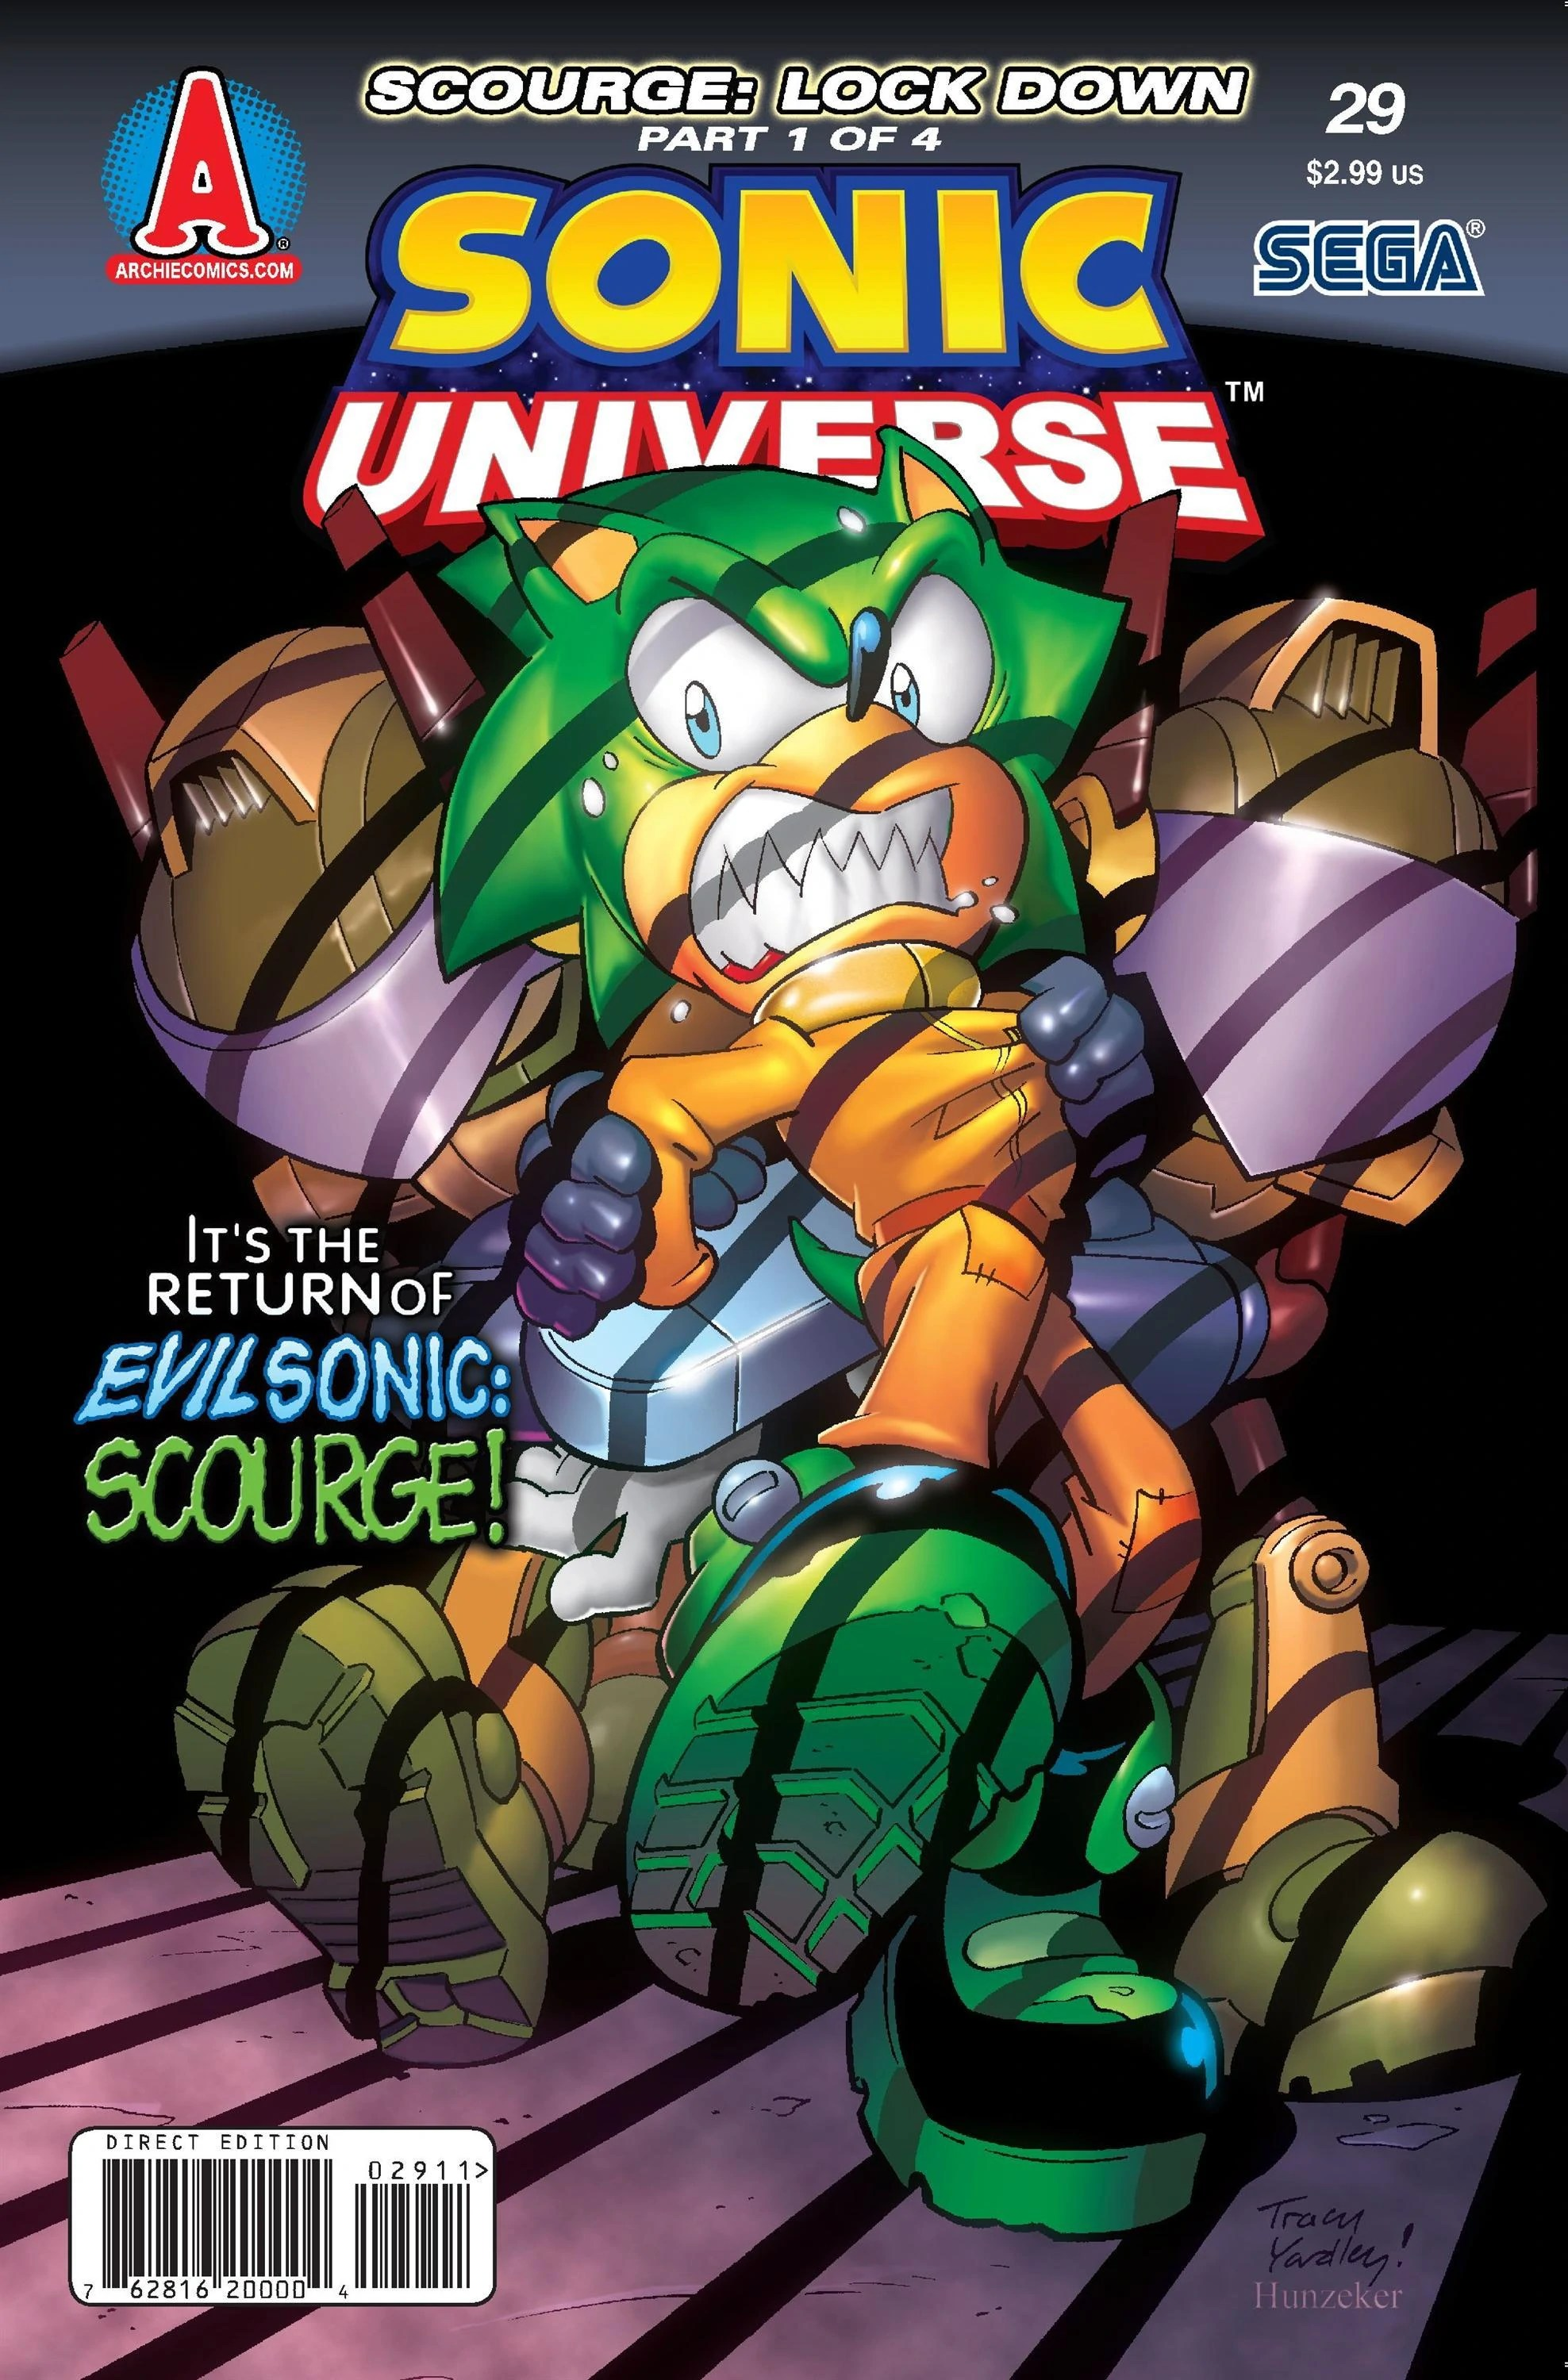 Fall Hedgehog Wallpaper Archie Sonic Universe Issue 29 Sonic News Network The